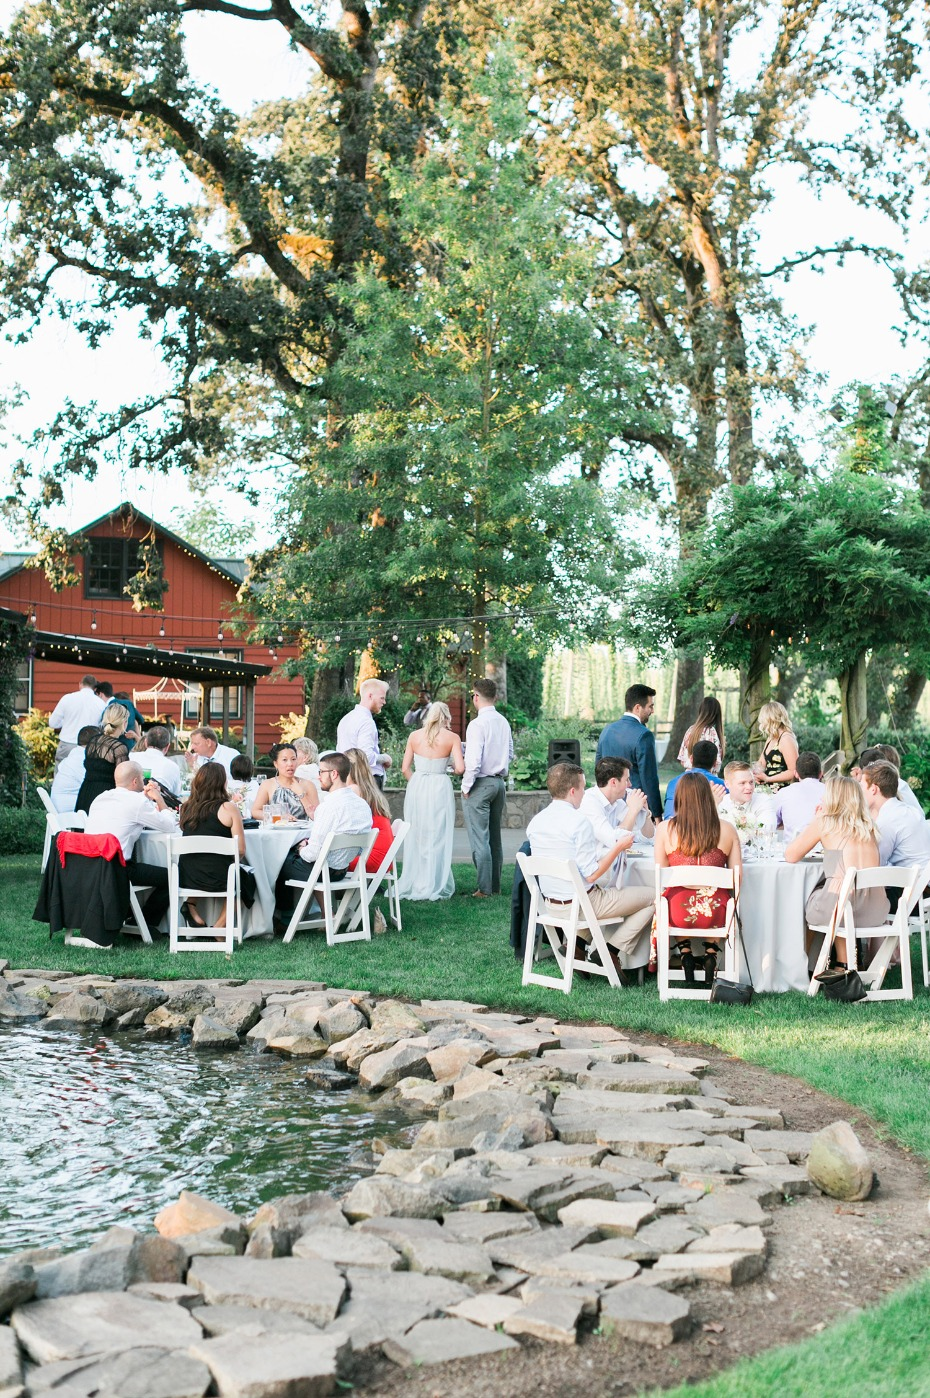 Summer wedding at a Hops farm in Oregon